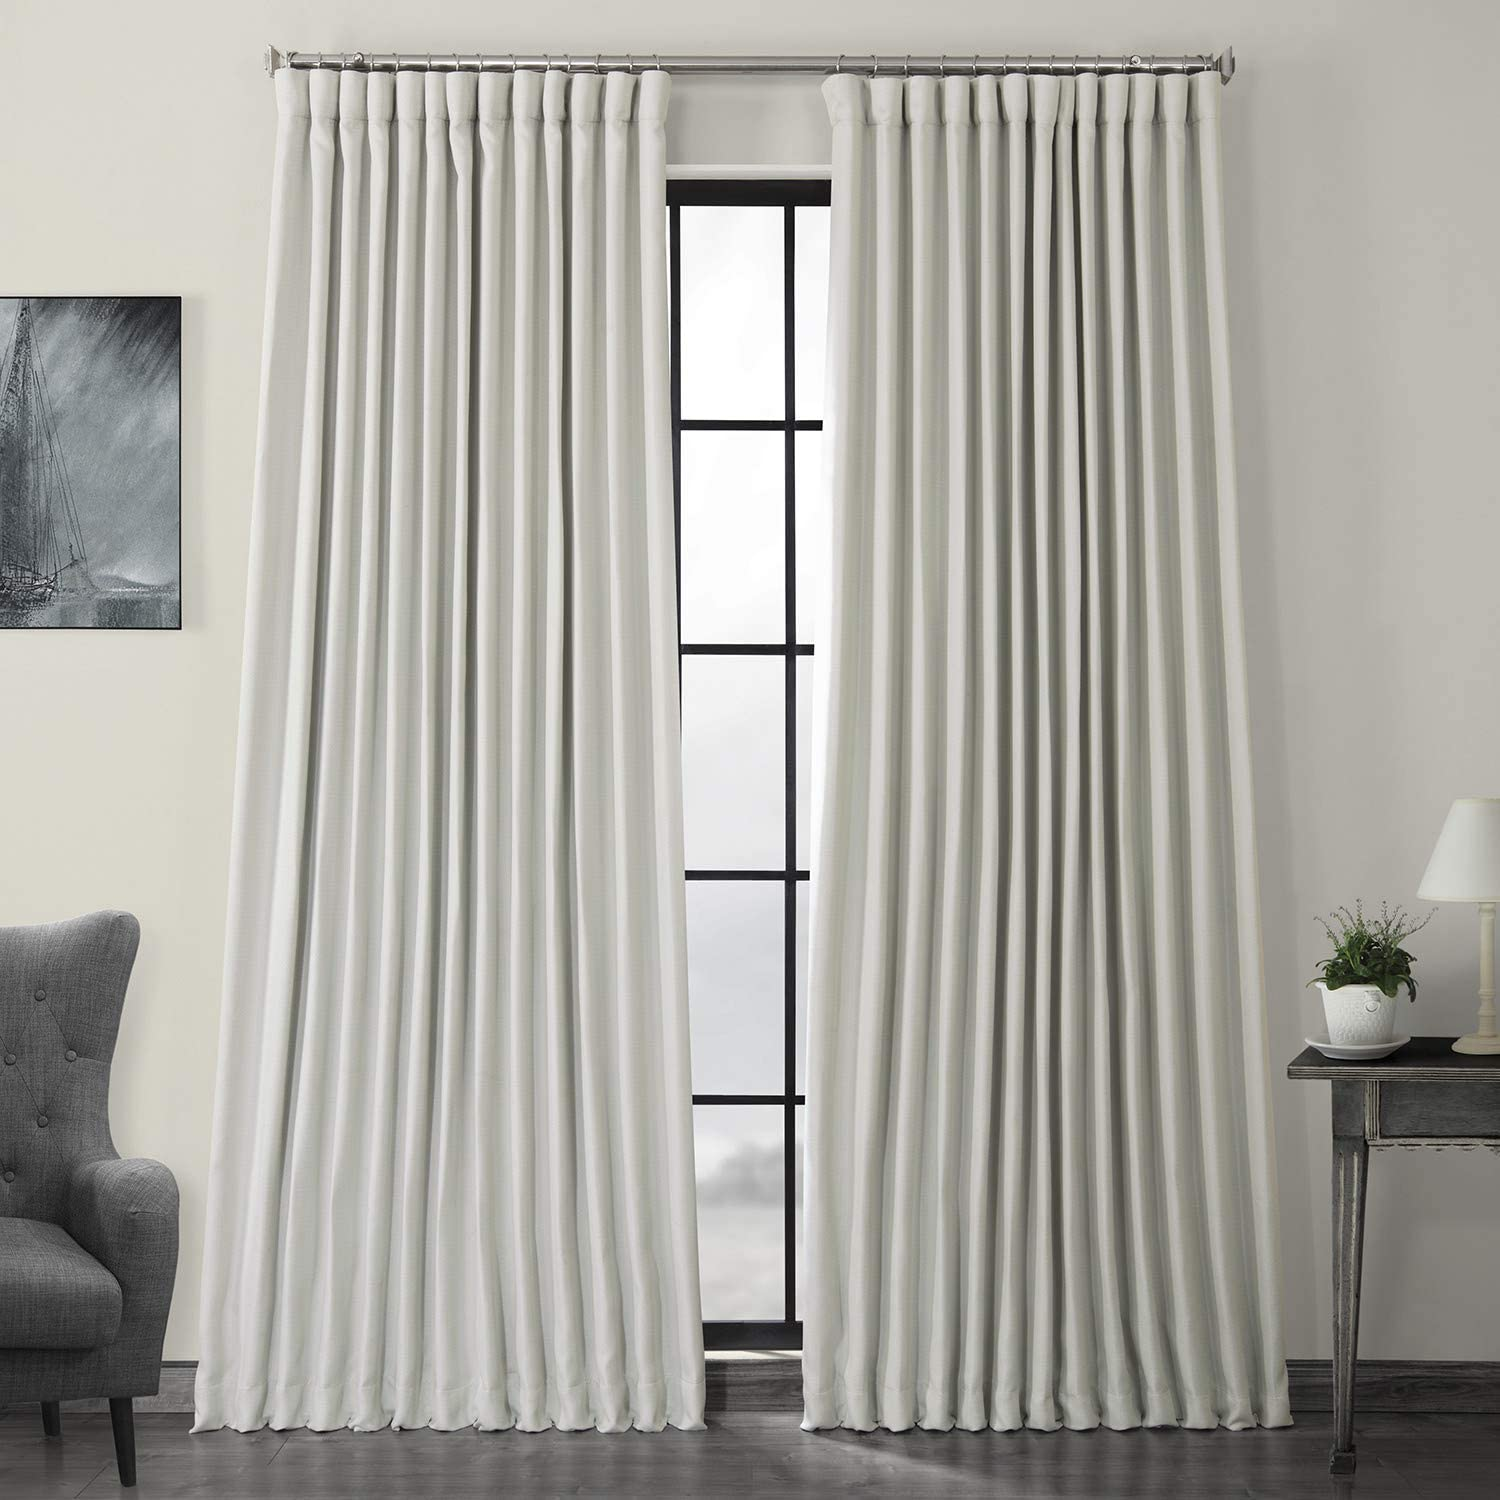 HPD Half Price Drapes BOCH-LN1855-108-DW Faux Linen Extra Wide Blackout Room Darkening Curtain (1 Panel), 100 X 108, Oyster